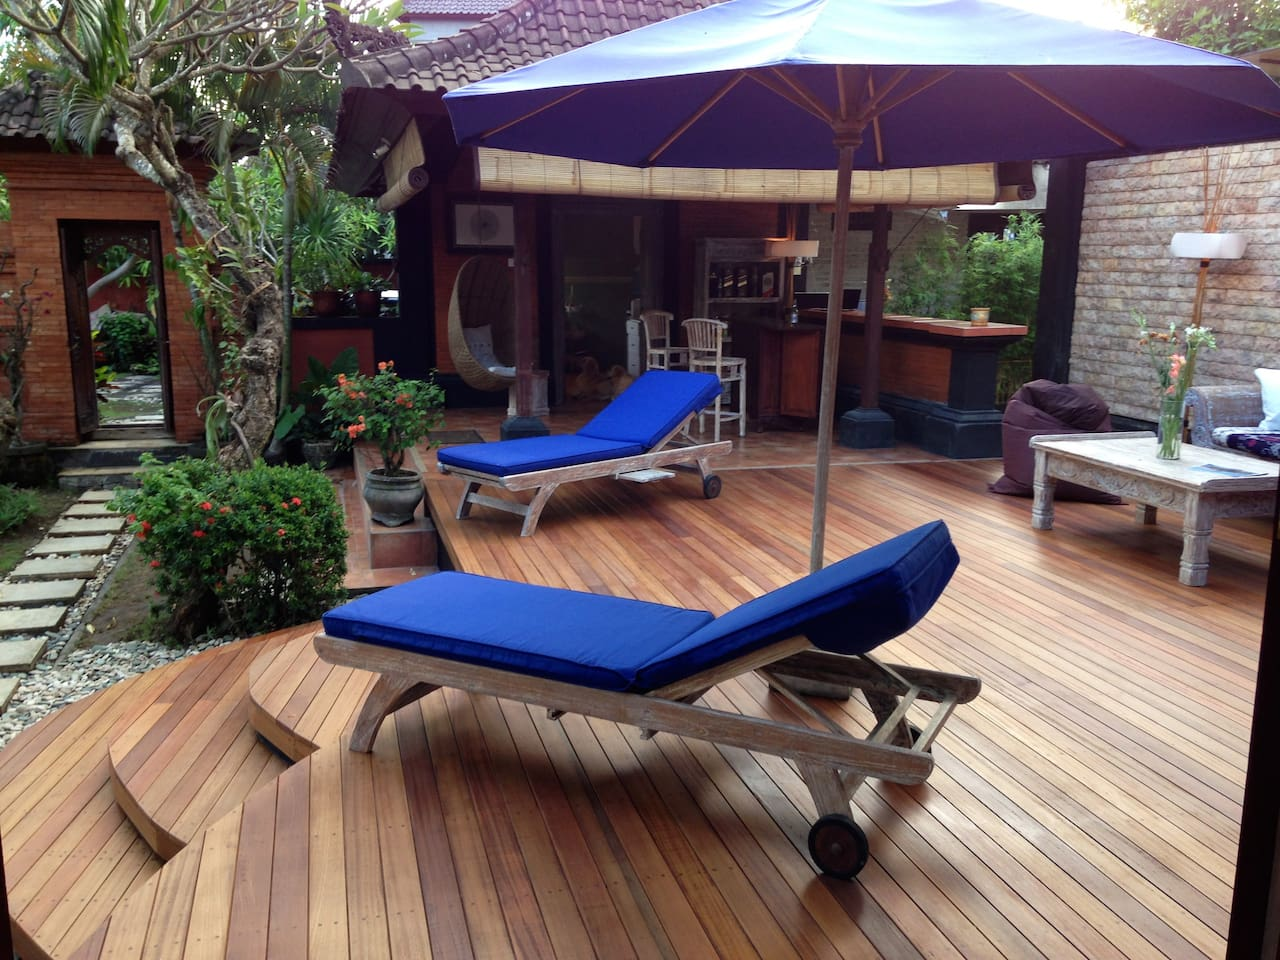 Our beautiful new sun deck is finished and ready to go.